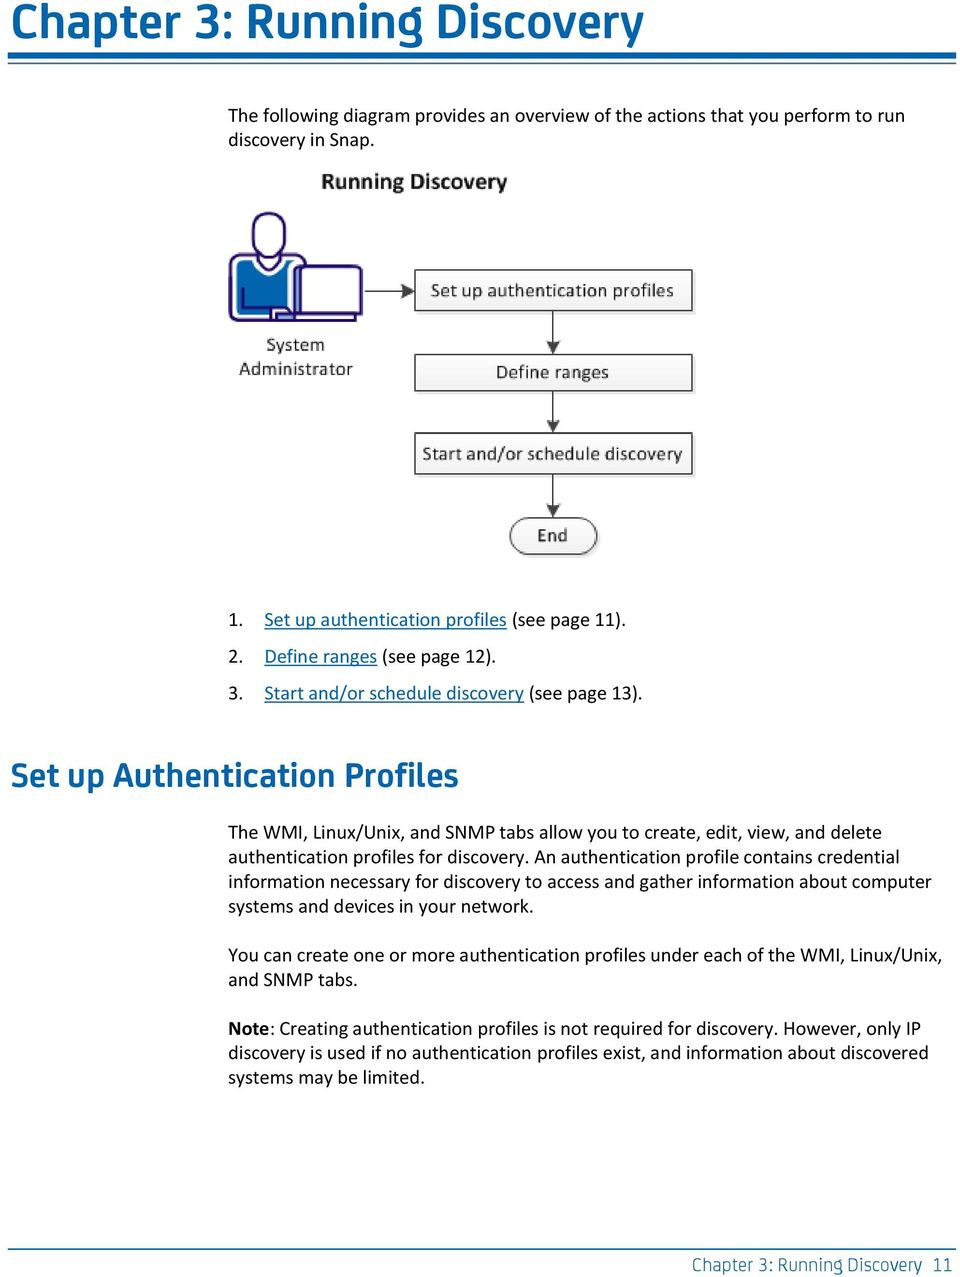 Set up Authentication Profiles The WMI, Linux/Unix, and SNMP tabs allow you to create, edit, view, and delete authentication profiles for discovery.